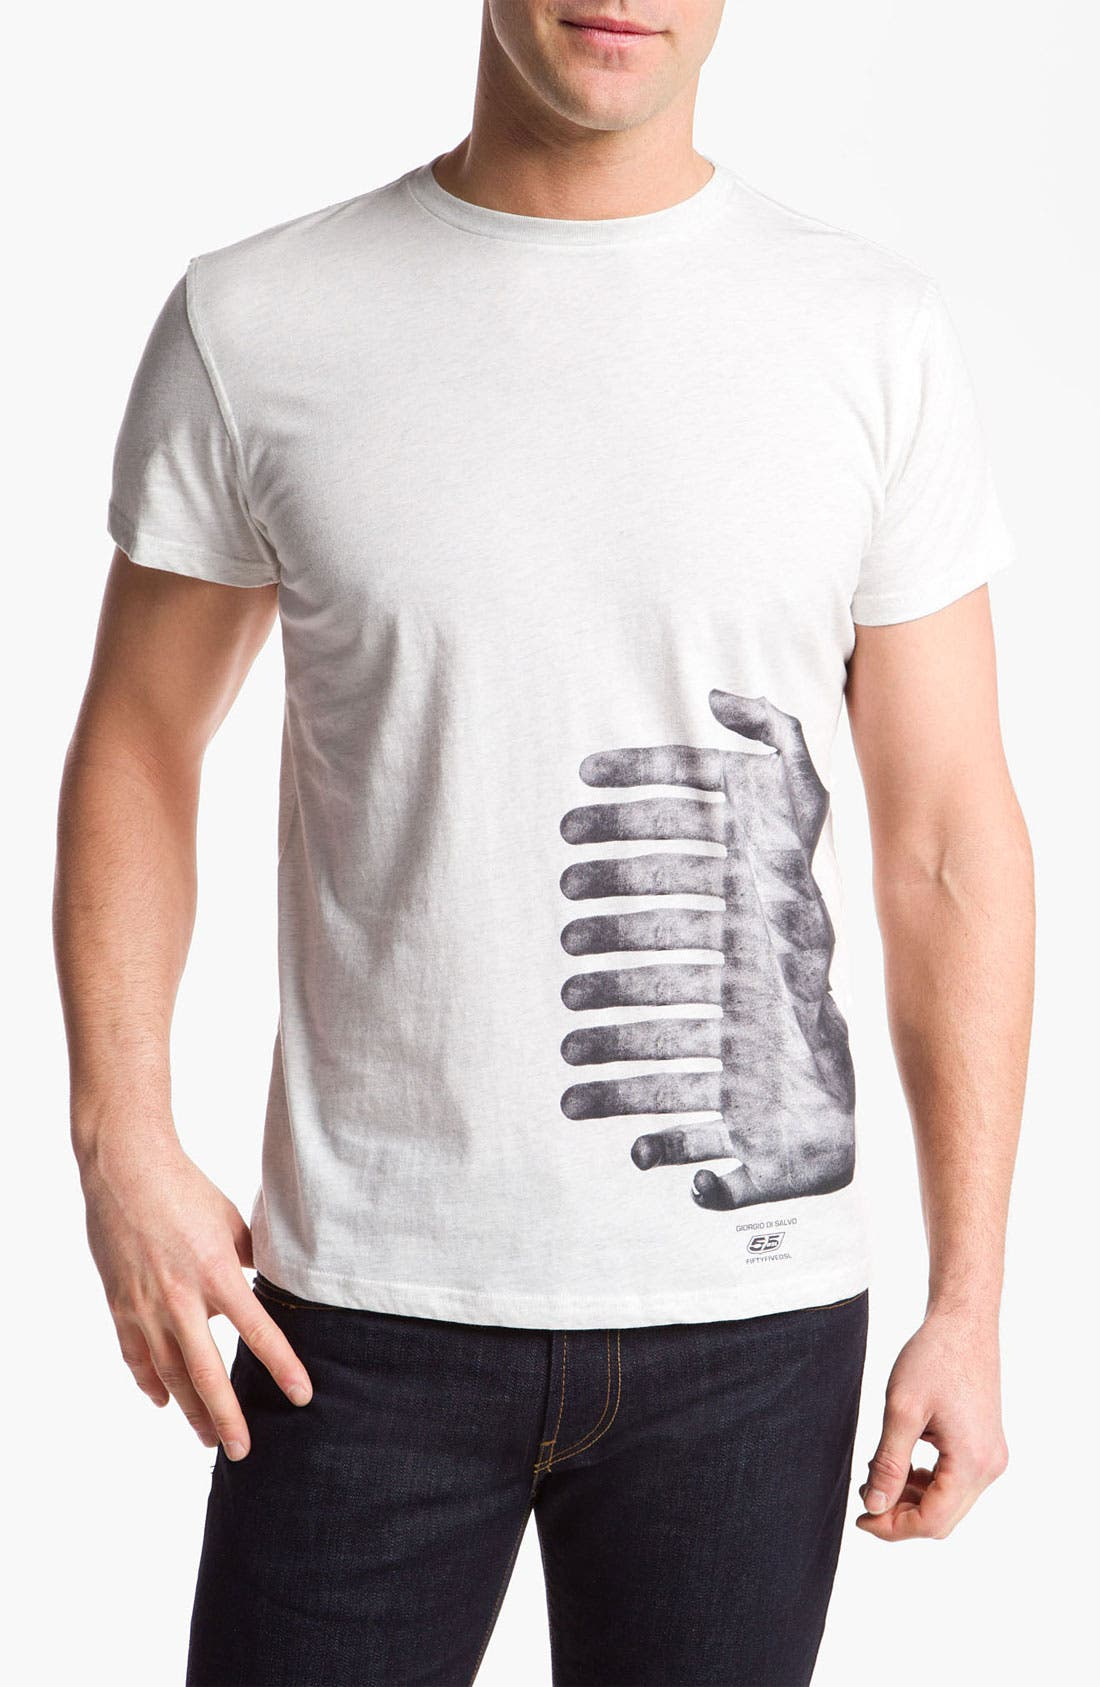 Alternate Image 1 Selected - 55DSL 'Girogio di Salva' Graphic T-Shirt